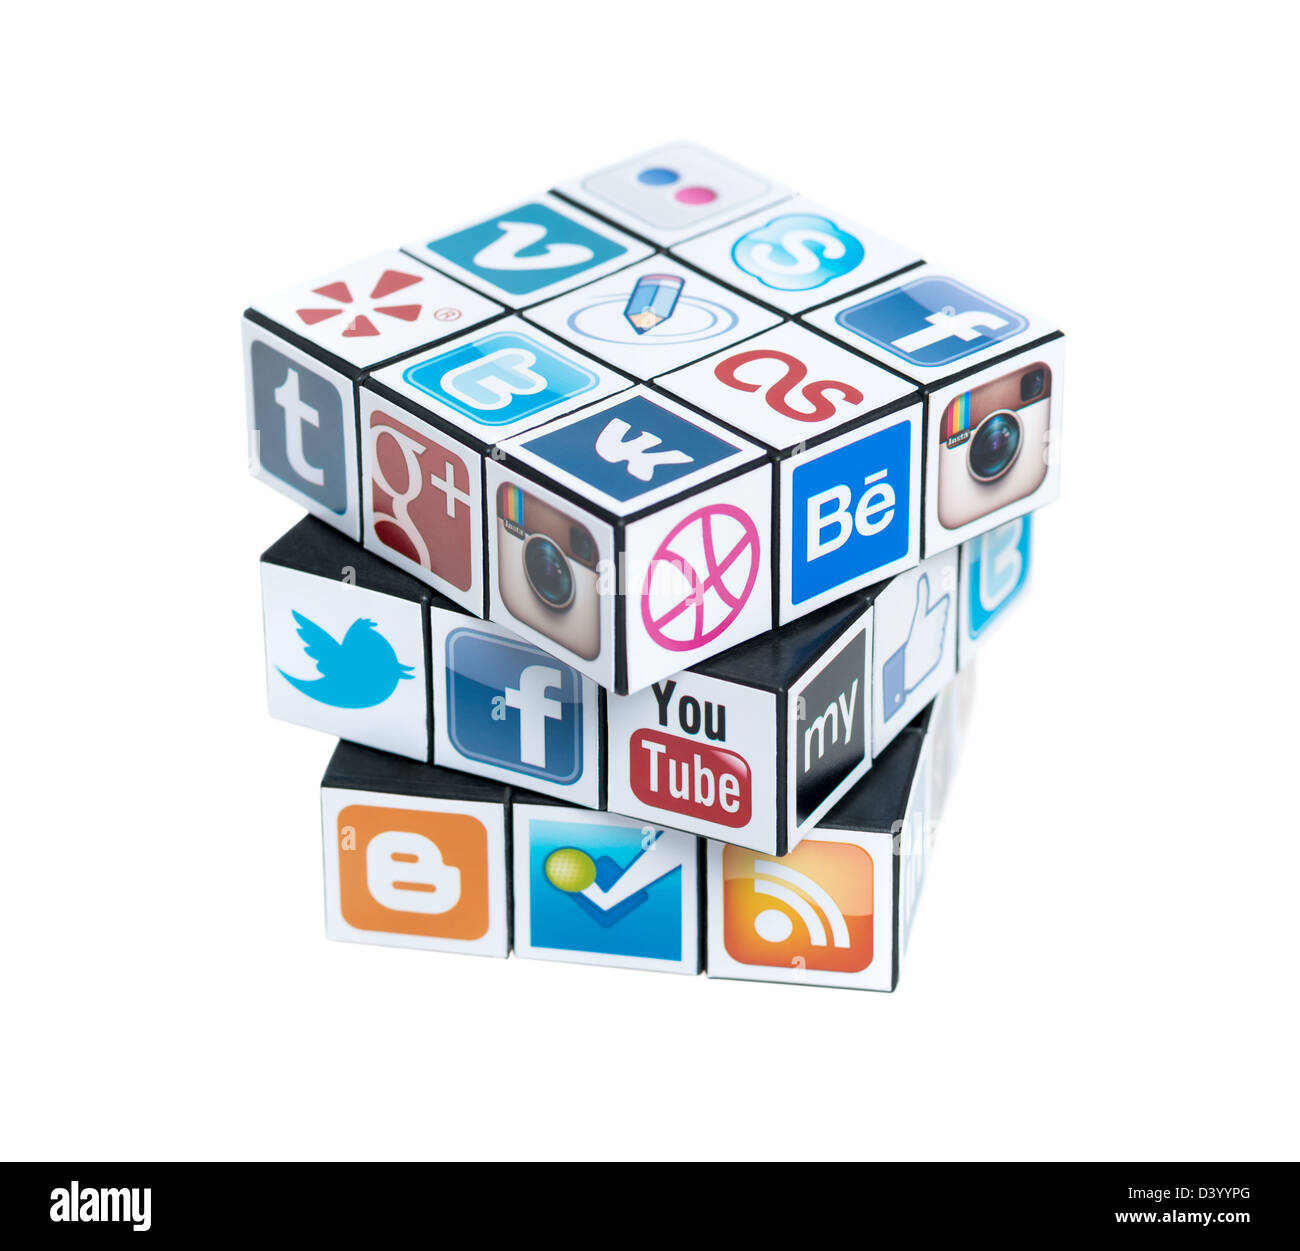 A rubik's cube with logotypes of well-known social media brand's. - Stock Image